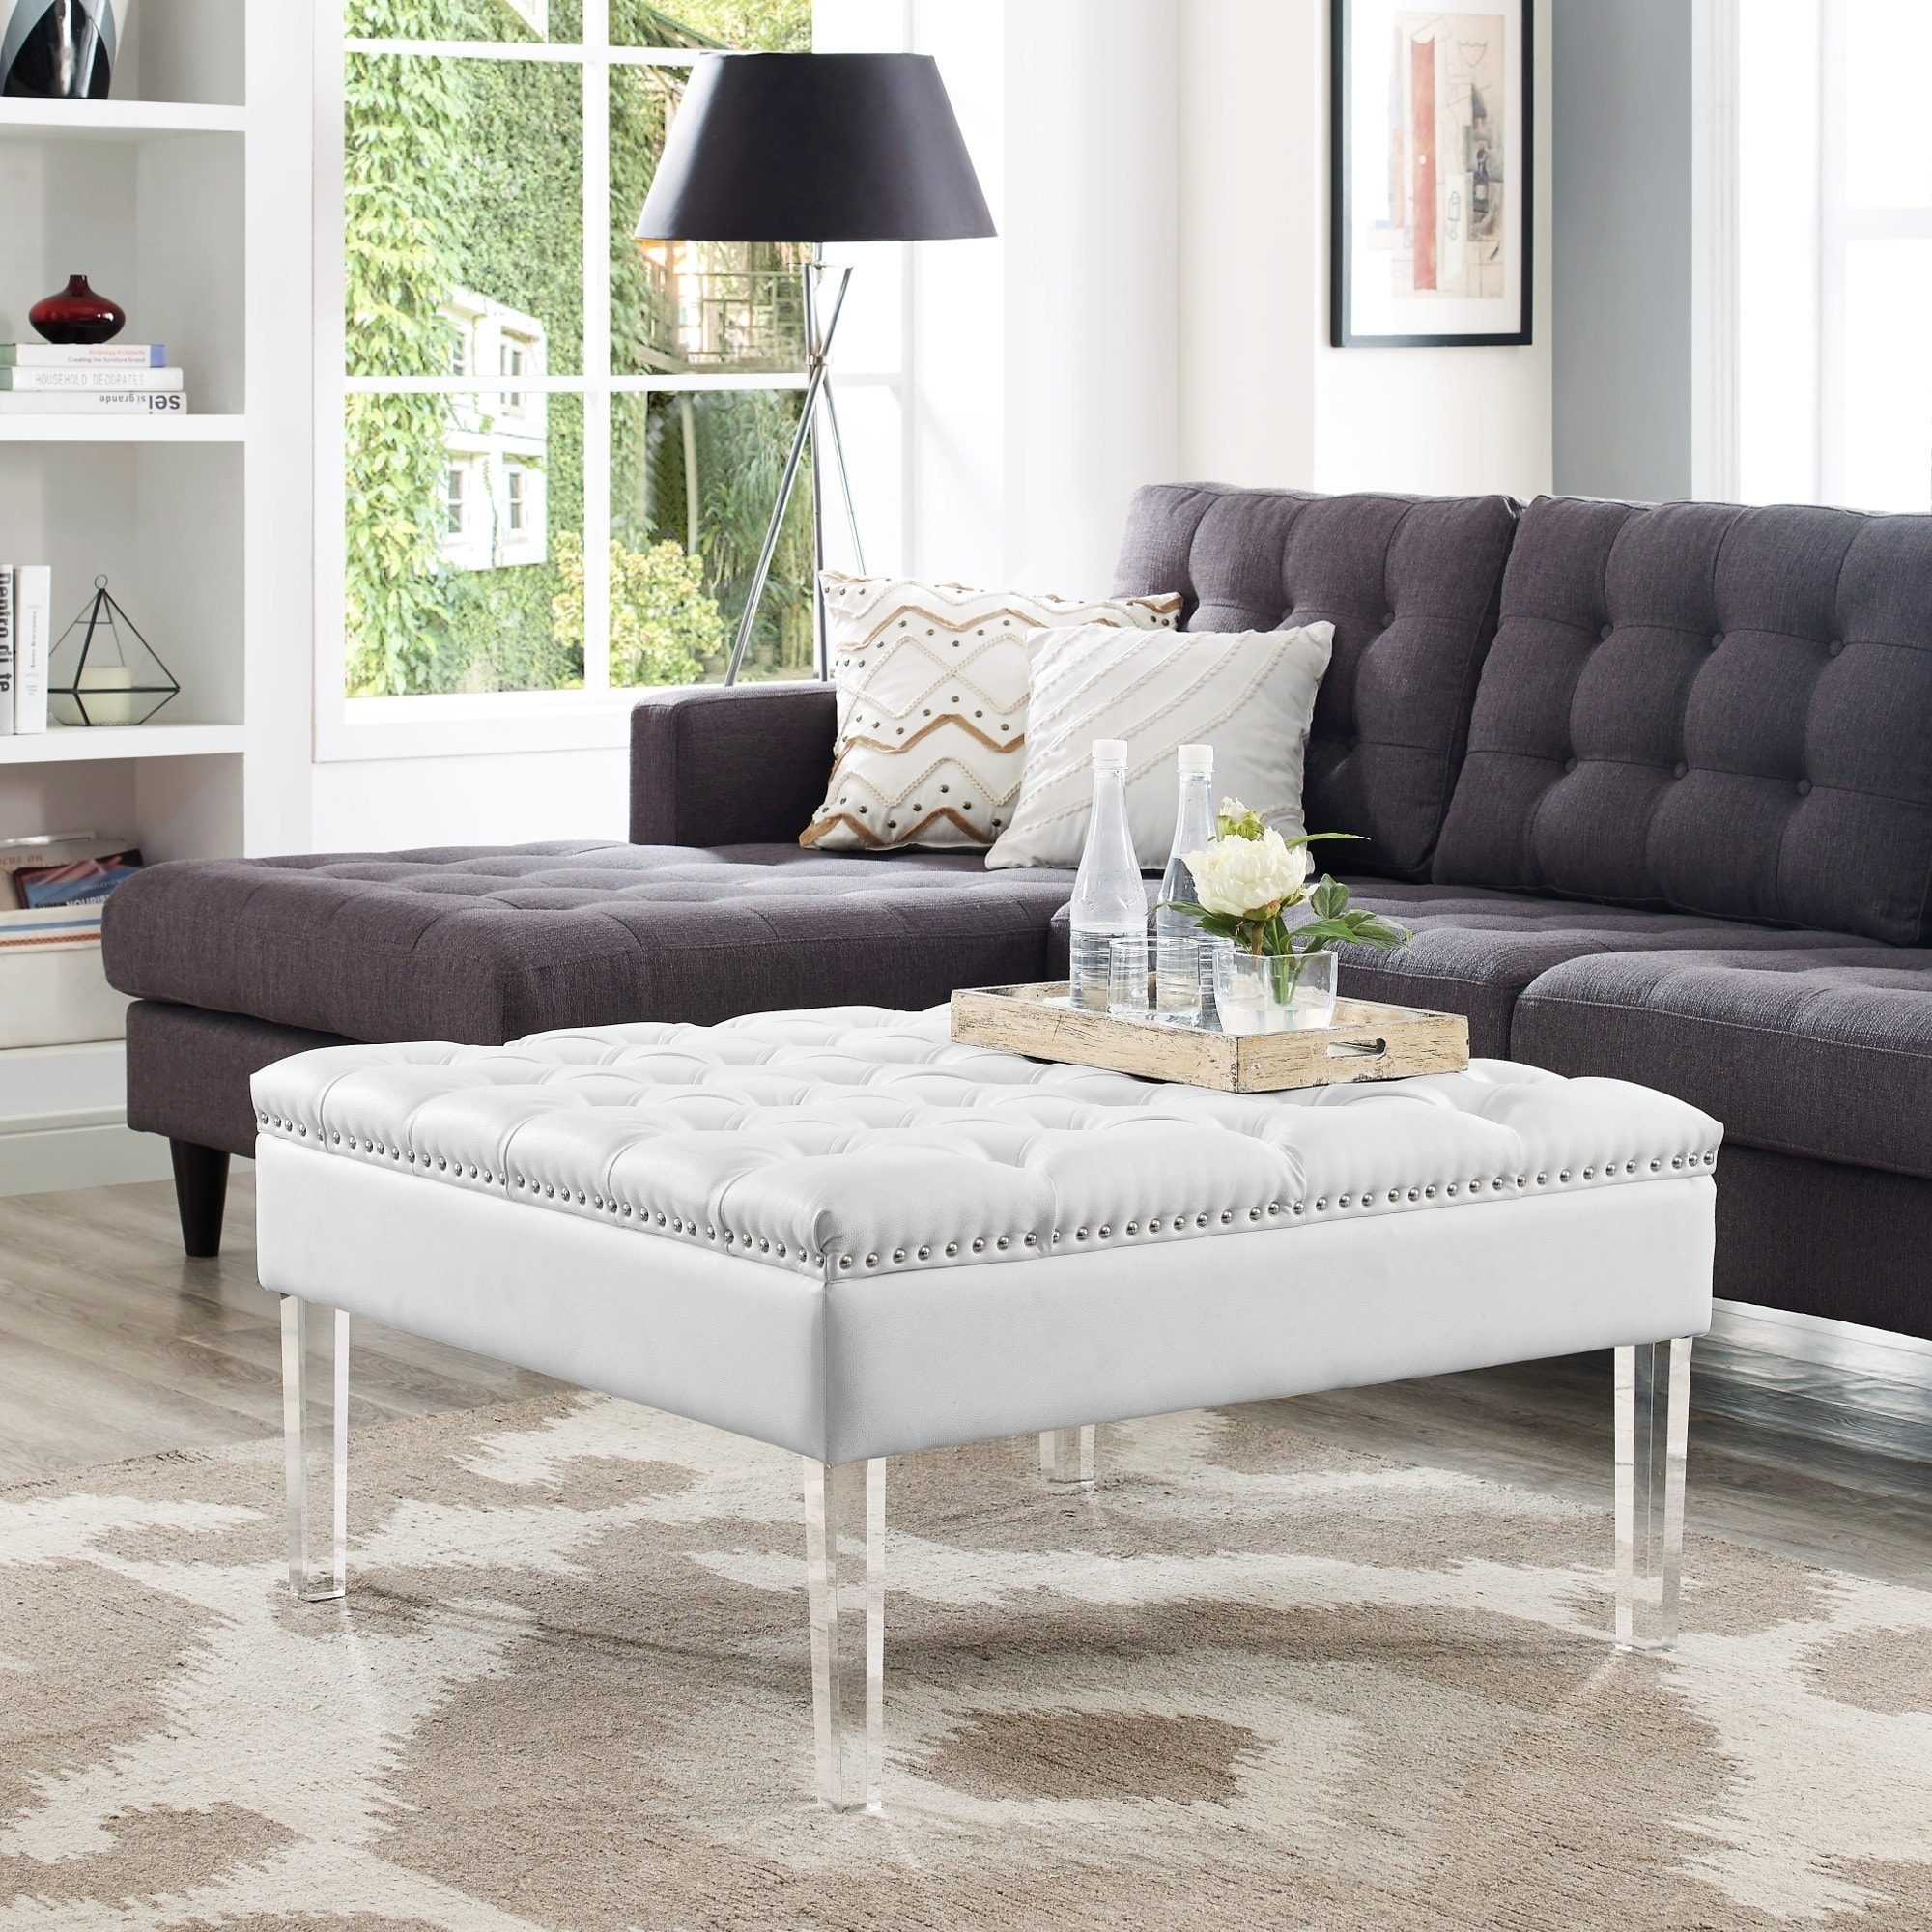 Vivian Leather Oversized Button-tufted Ottoman Coffee Table - Free ...